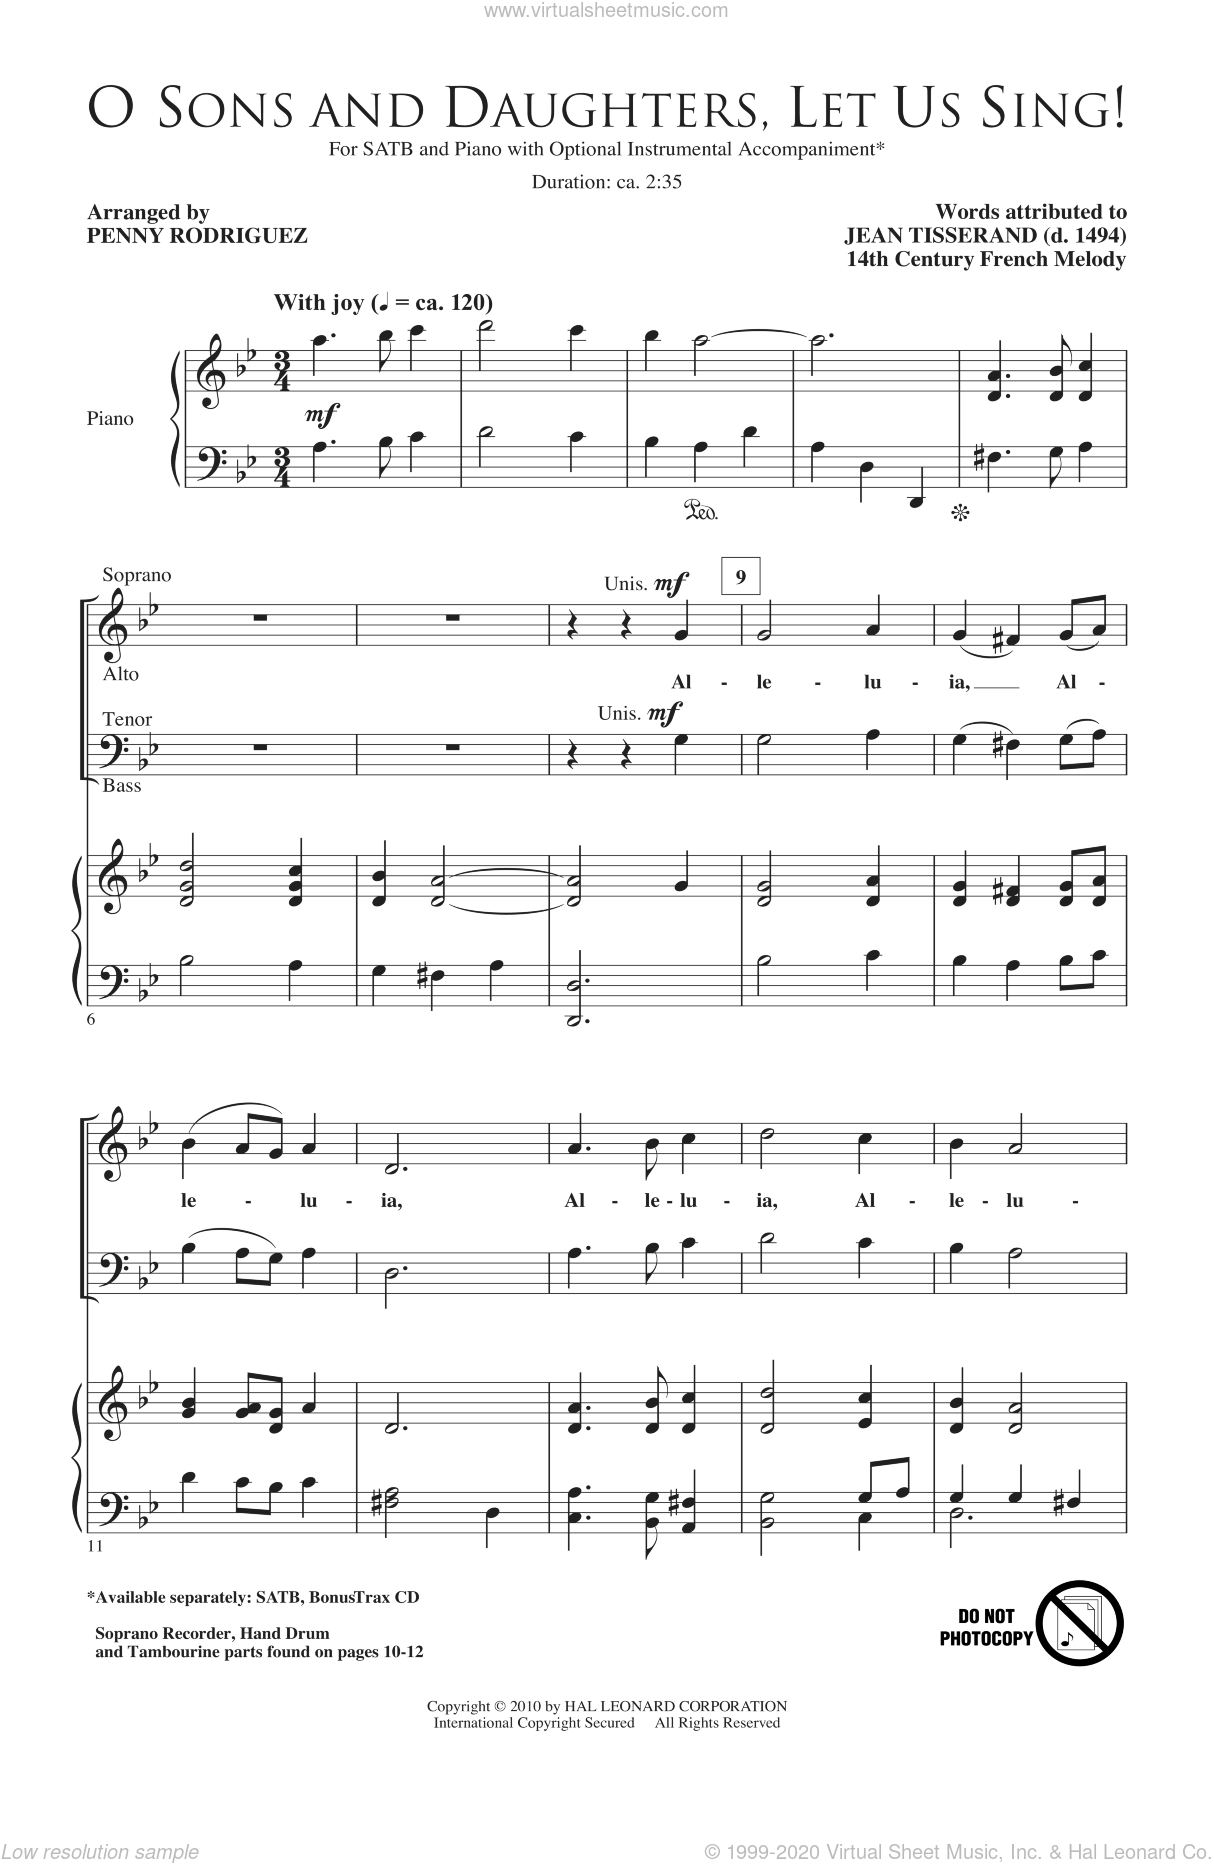 O Sons And Daughters, Let Us Sing! sheet music for choir and piano (SATB)  and Penny Rodriguez